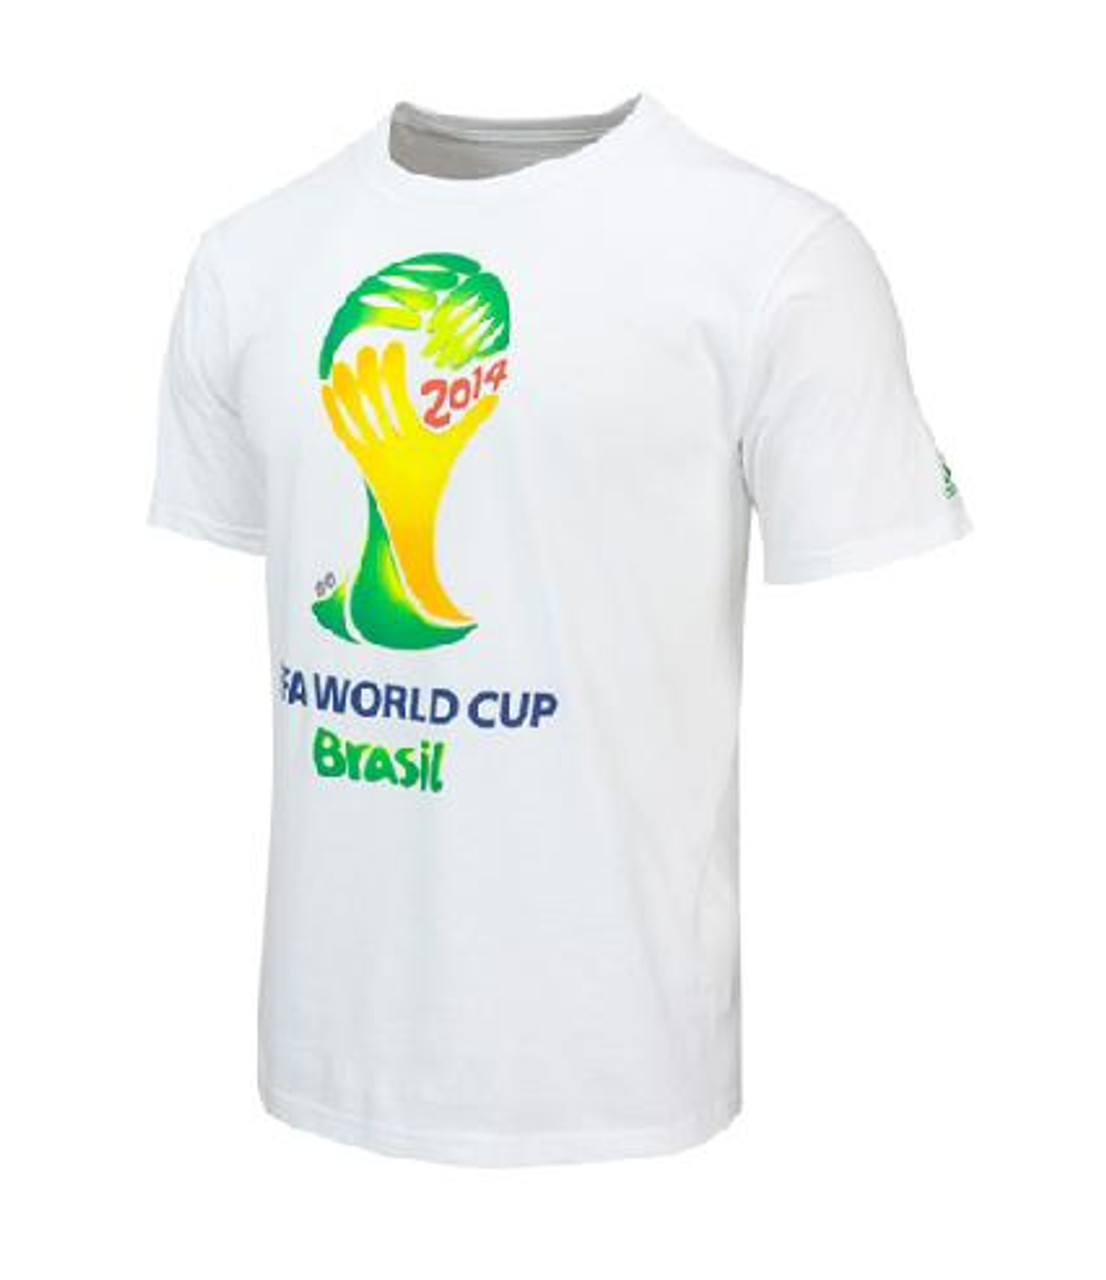 35c850e13 adidas Youth FIFA World Cup Tee - White SD (1617) - ohp soccer